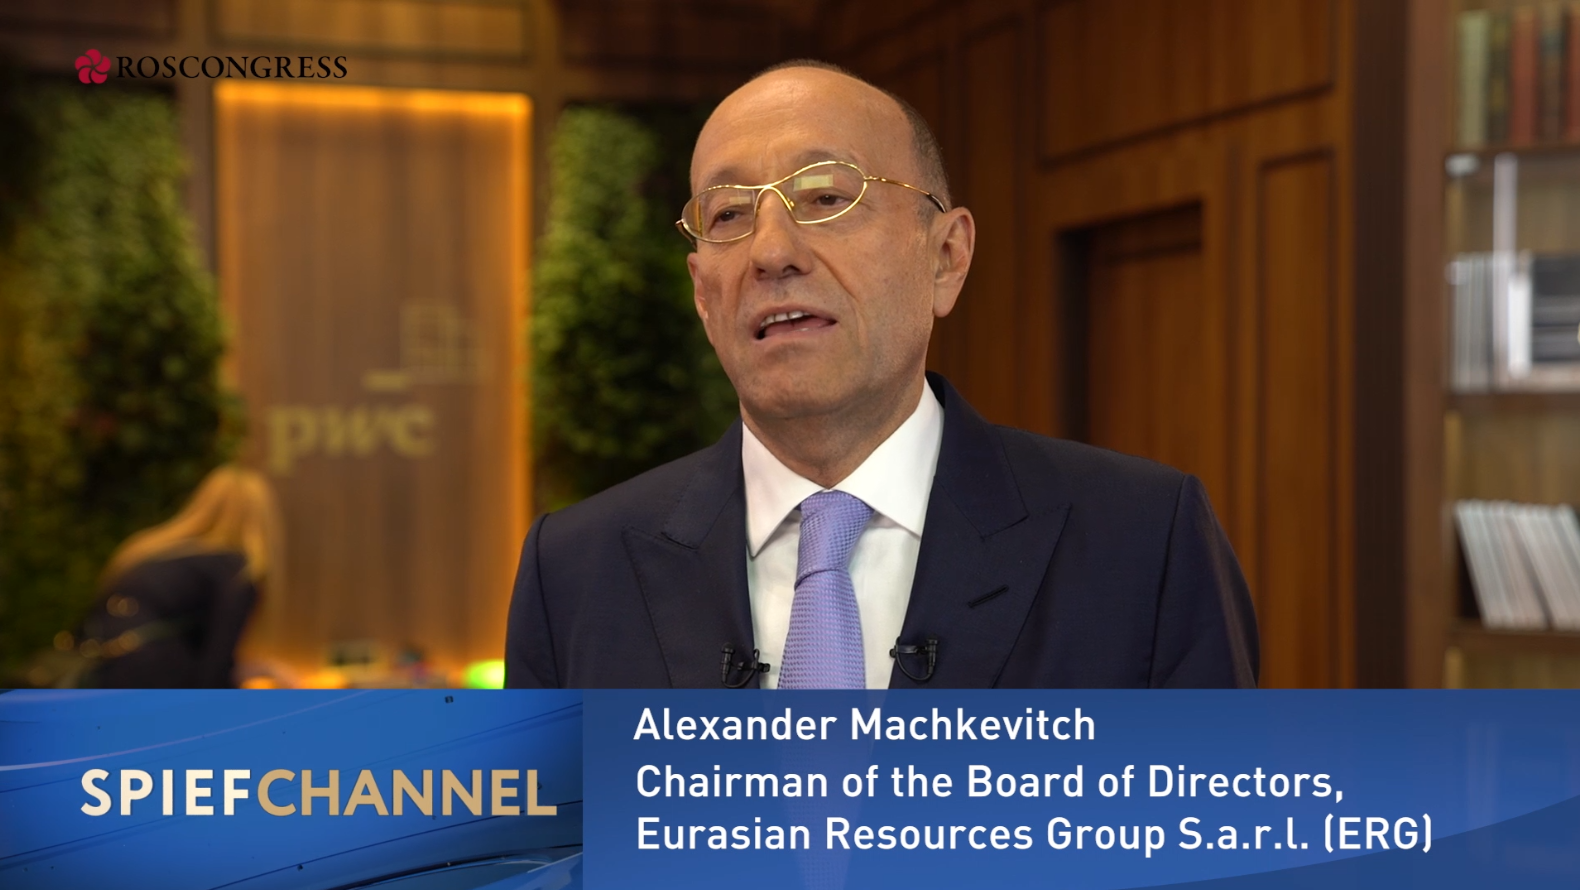 Alexander Machkevitch, Chairman of Board of Directors,Eurasian Resources Group